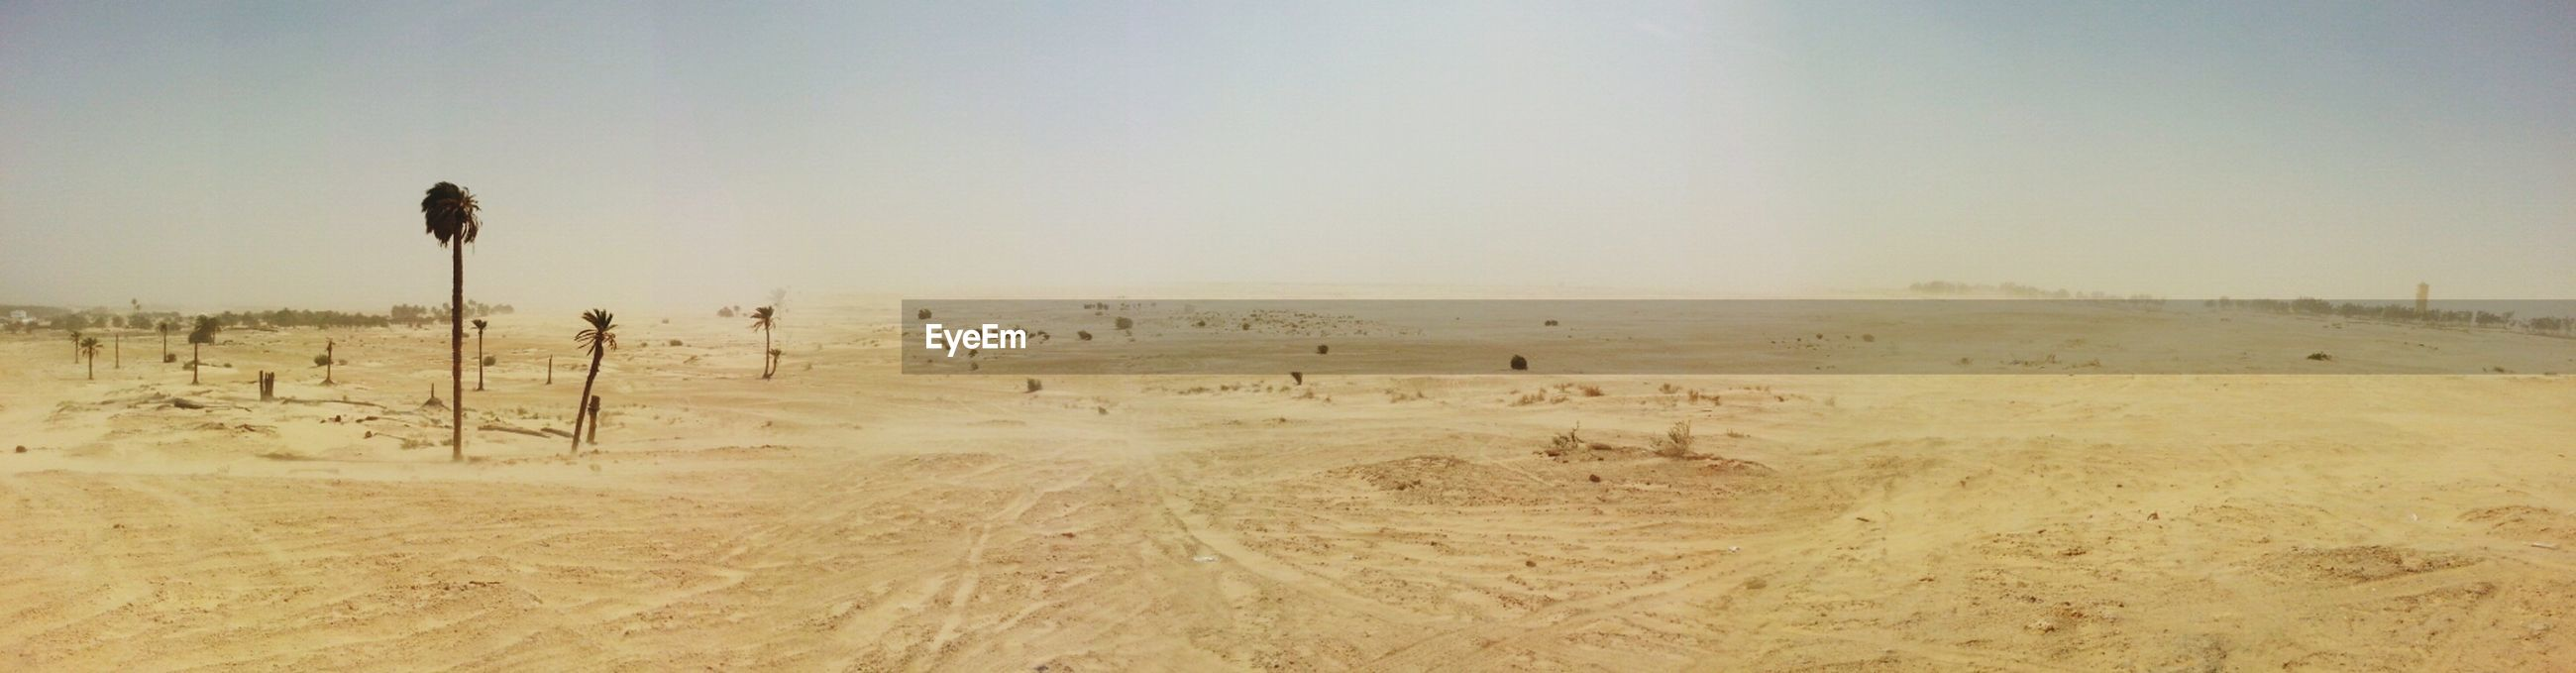 clear sky, sand, bird, landscape, tranquil scene, tranquility, copy space, nature, beach, animal themes, scenics, beauty in nature, sky, desert, animals in the wild, non-urban scene, field, flying, remote